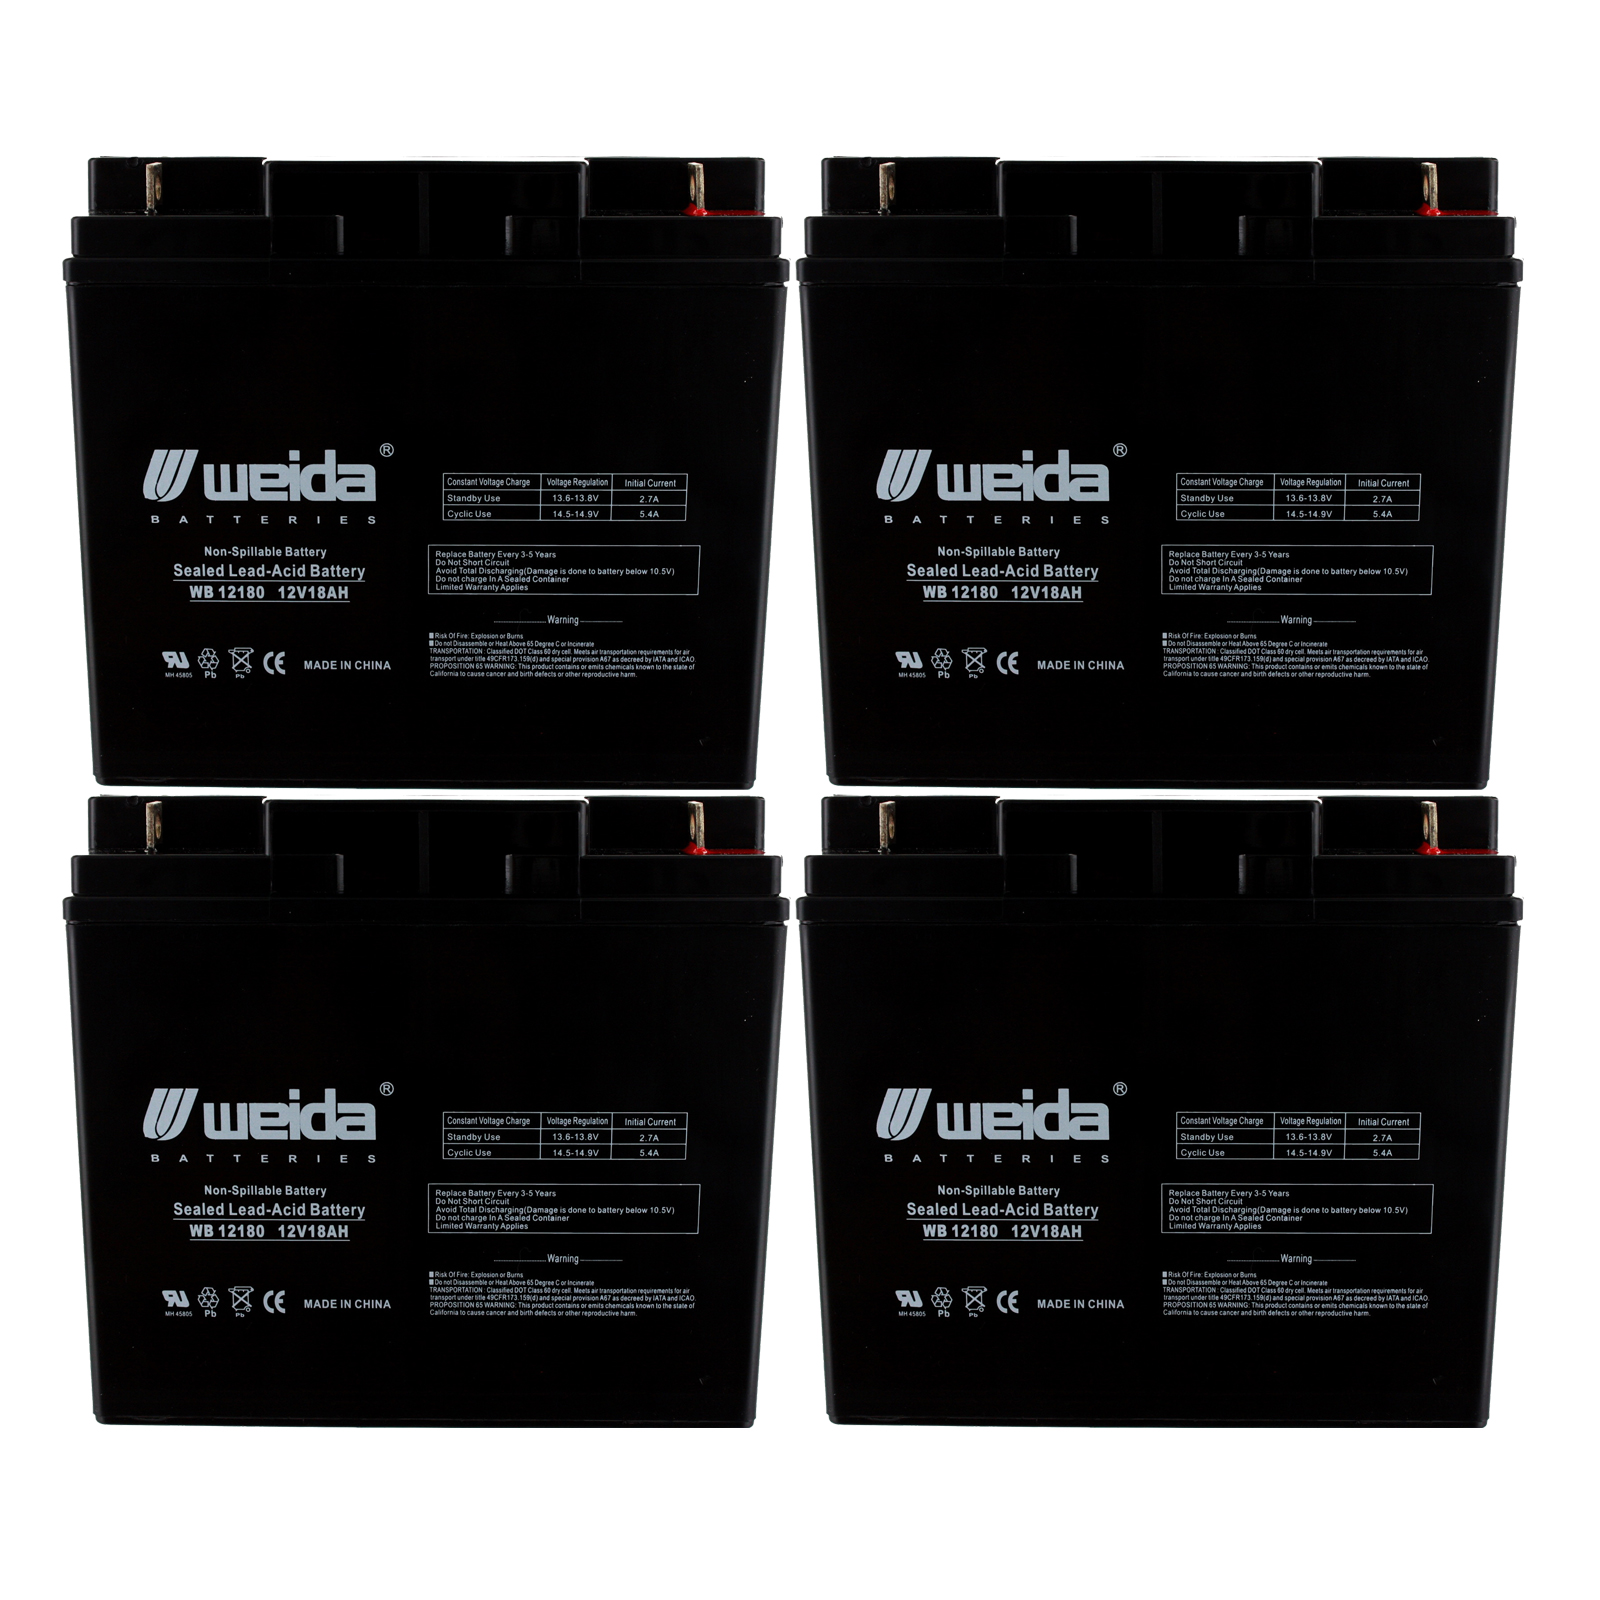 4 Pack AB12180 12V 18AH Replacement for General Power GPS-3K-120-61 UPS Battery